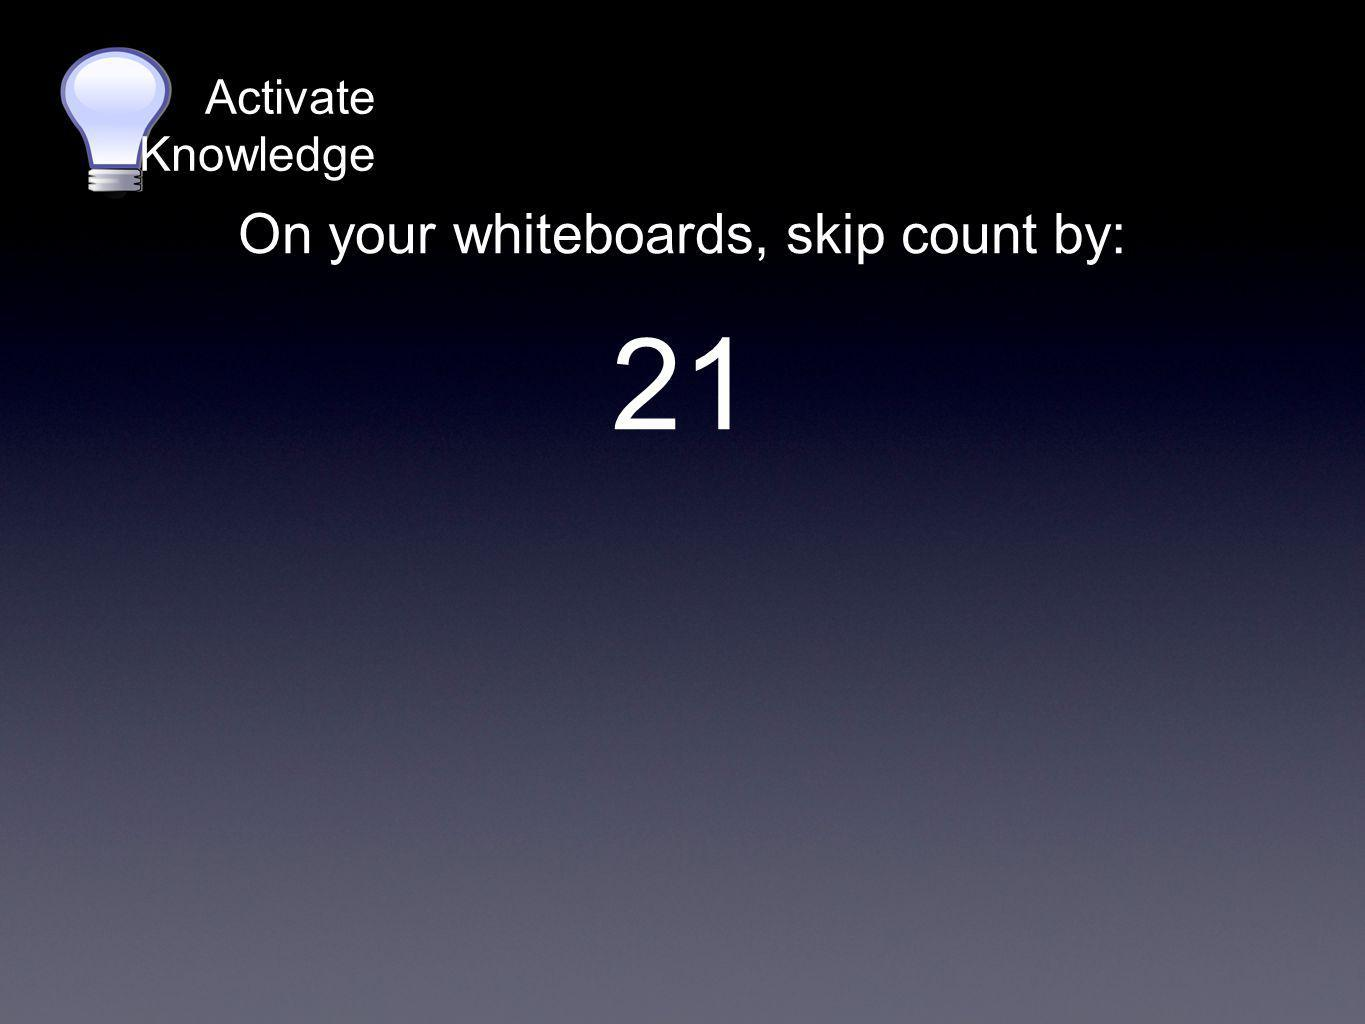 On your whiteboards, skip count by: